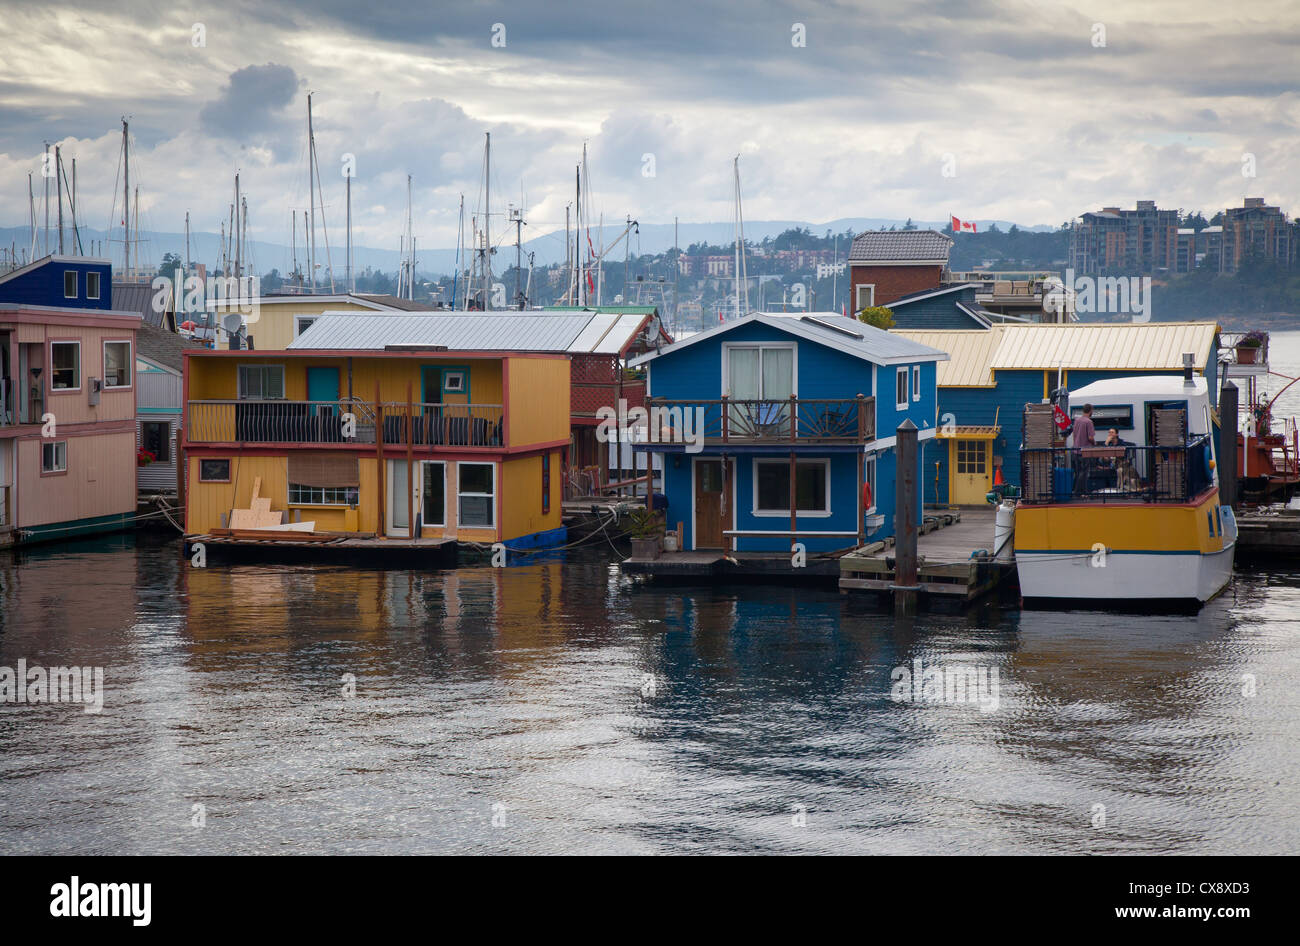 Floating homes in Victoria, BC, Canada - Stock Image